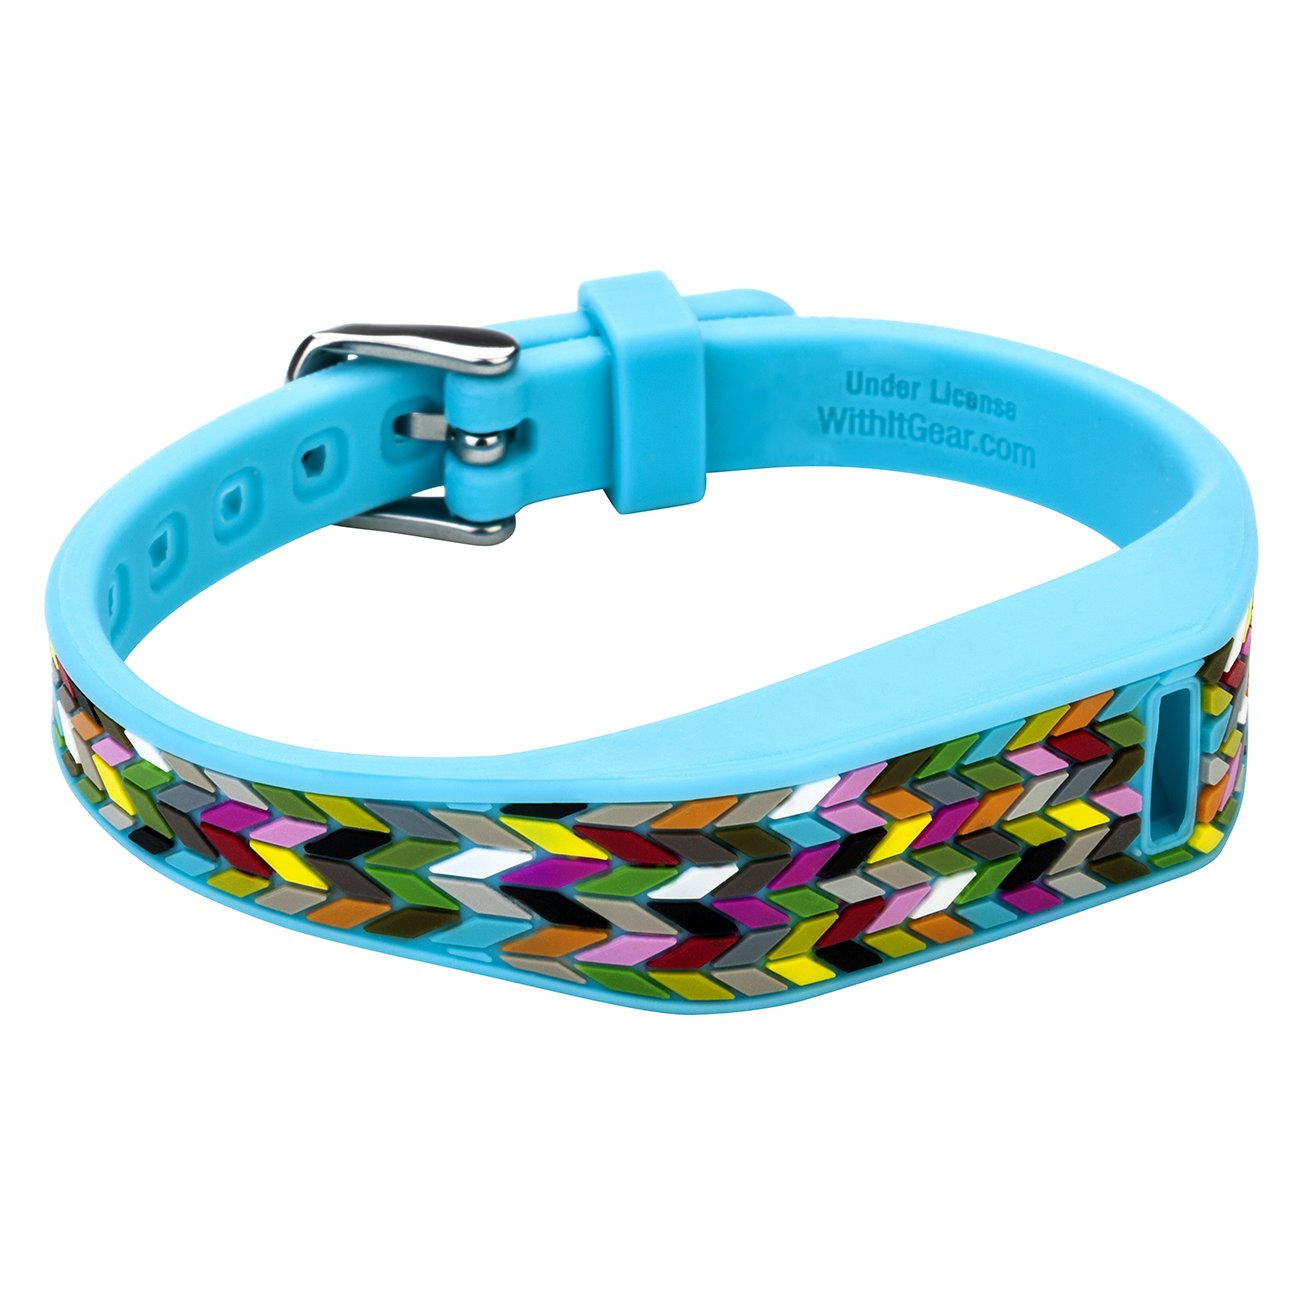 Fitbit French Bull Flex Band with Chrome Clasp - Blue